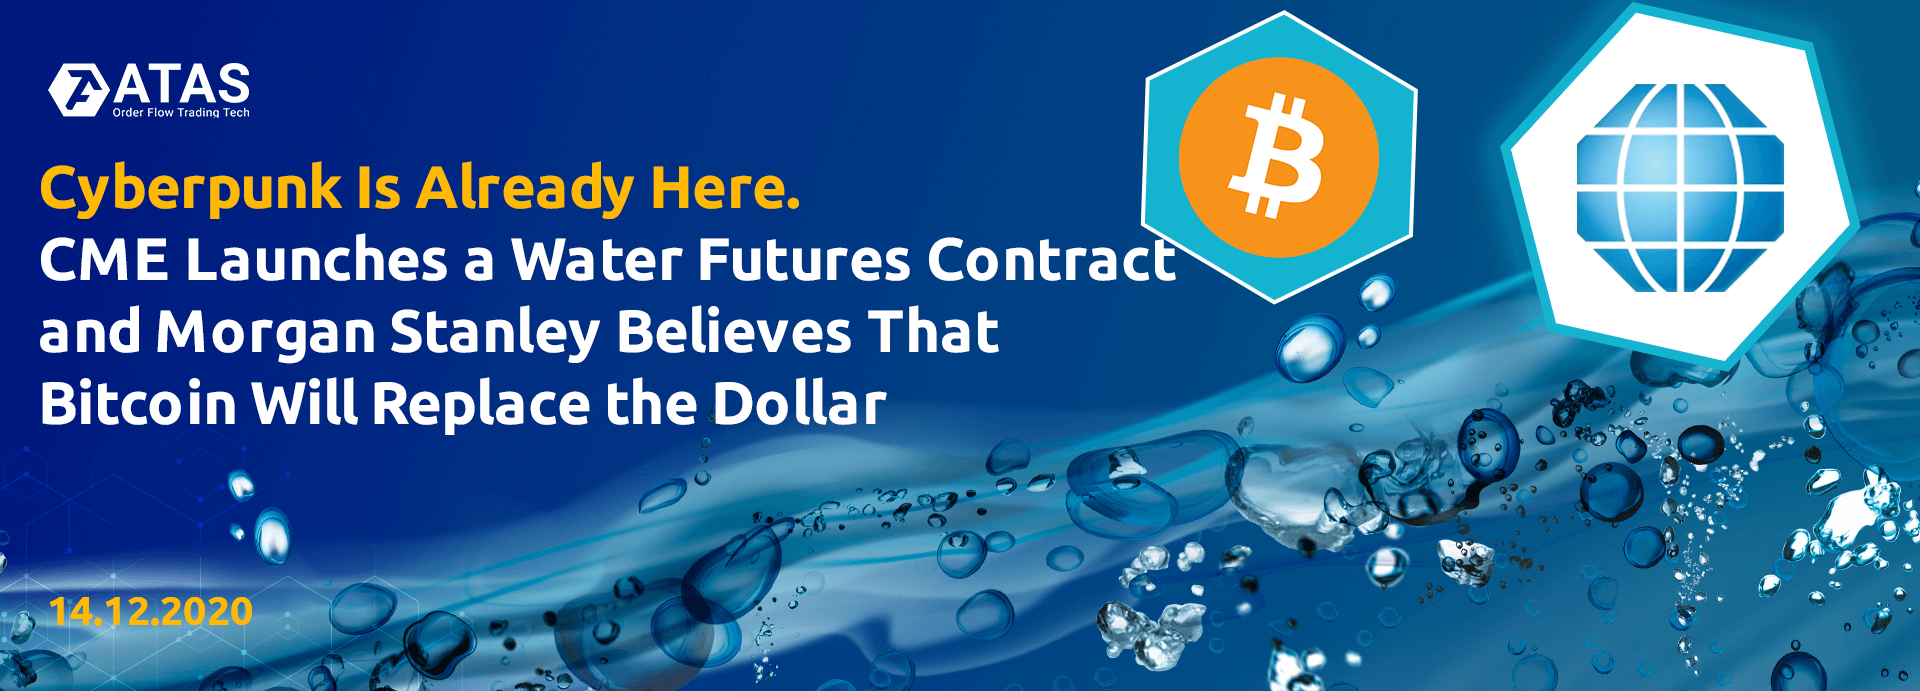 Cyberpunk Is Already Here. CME Launches a Water Futures Contract And Morgan Stanley Believes That Bitcoin Will Replace the Dollar